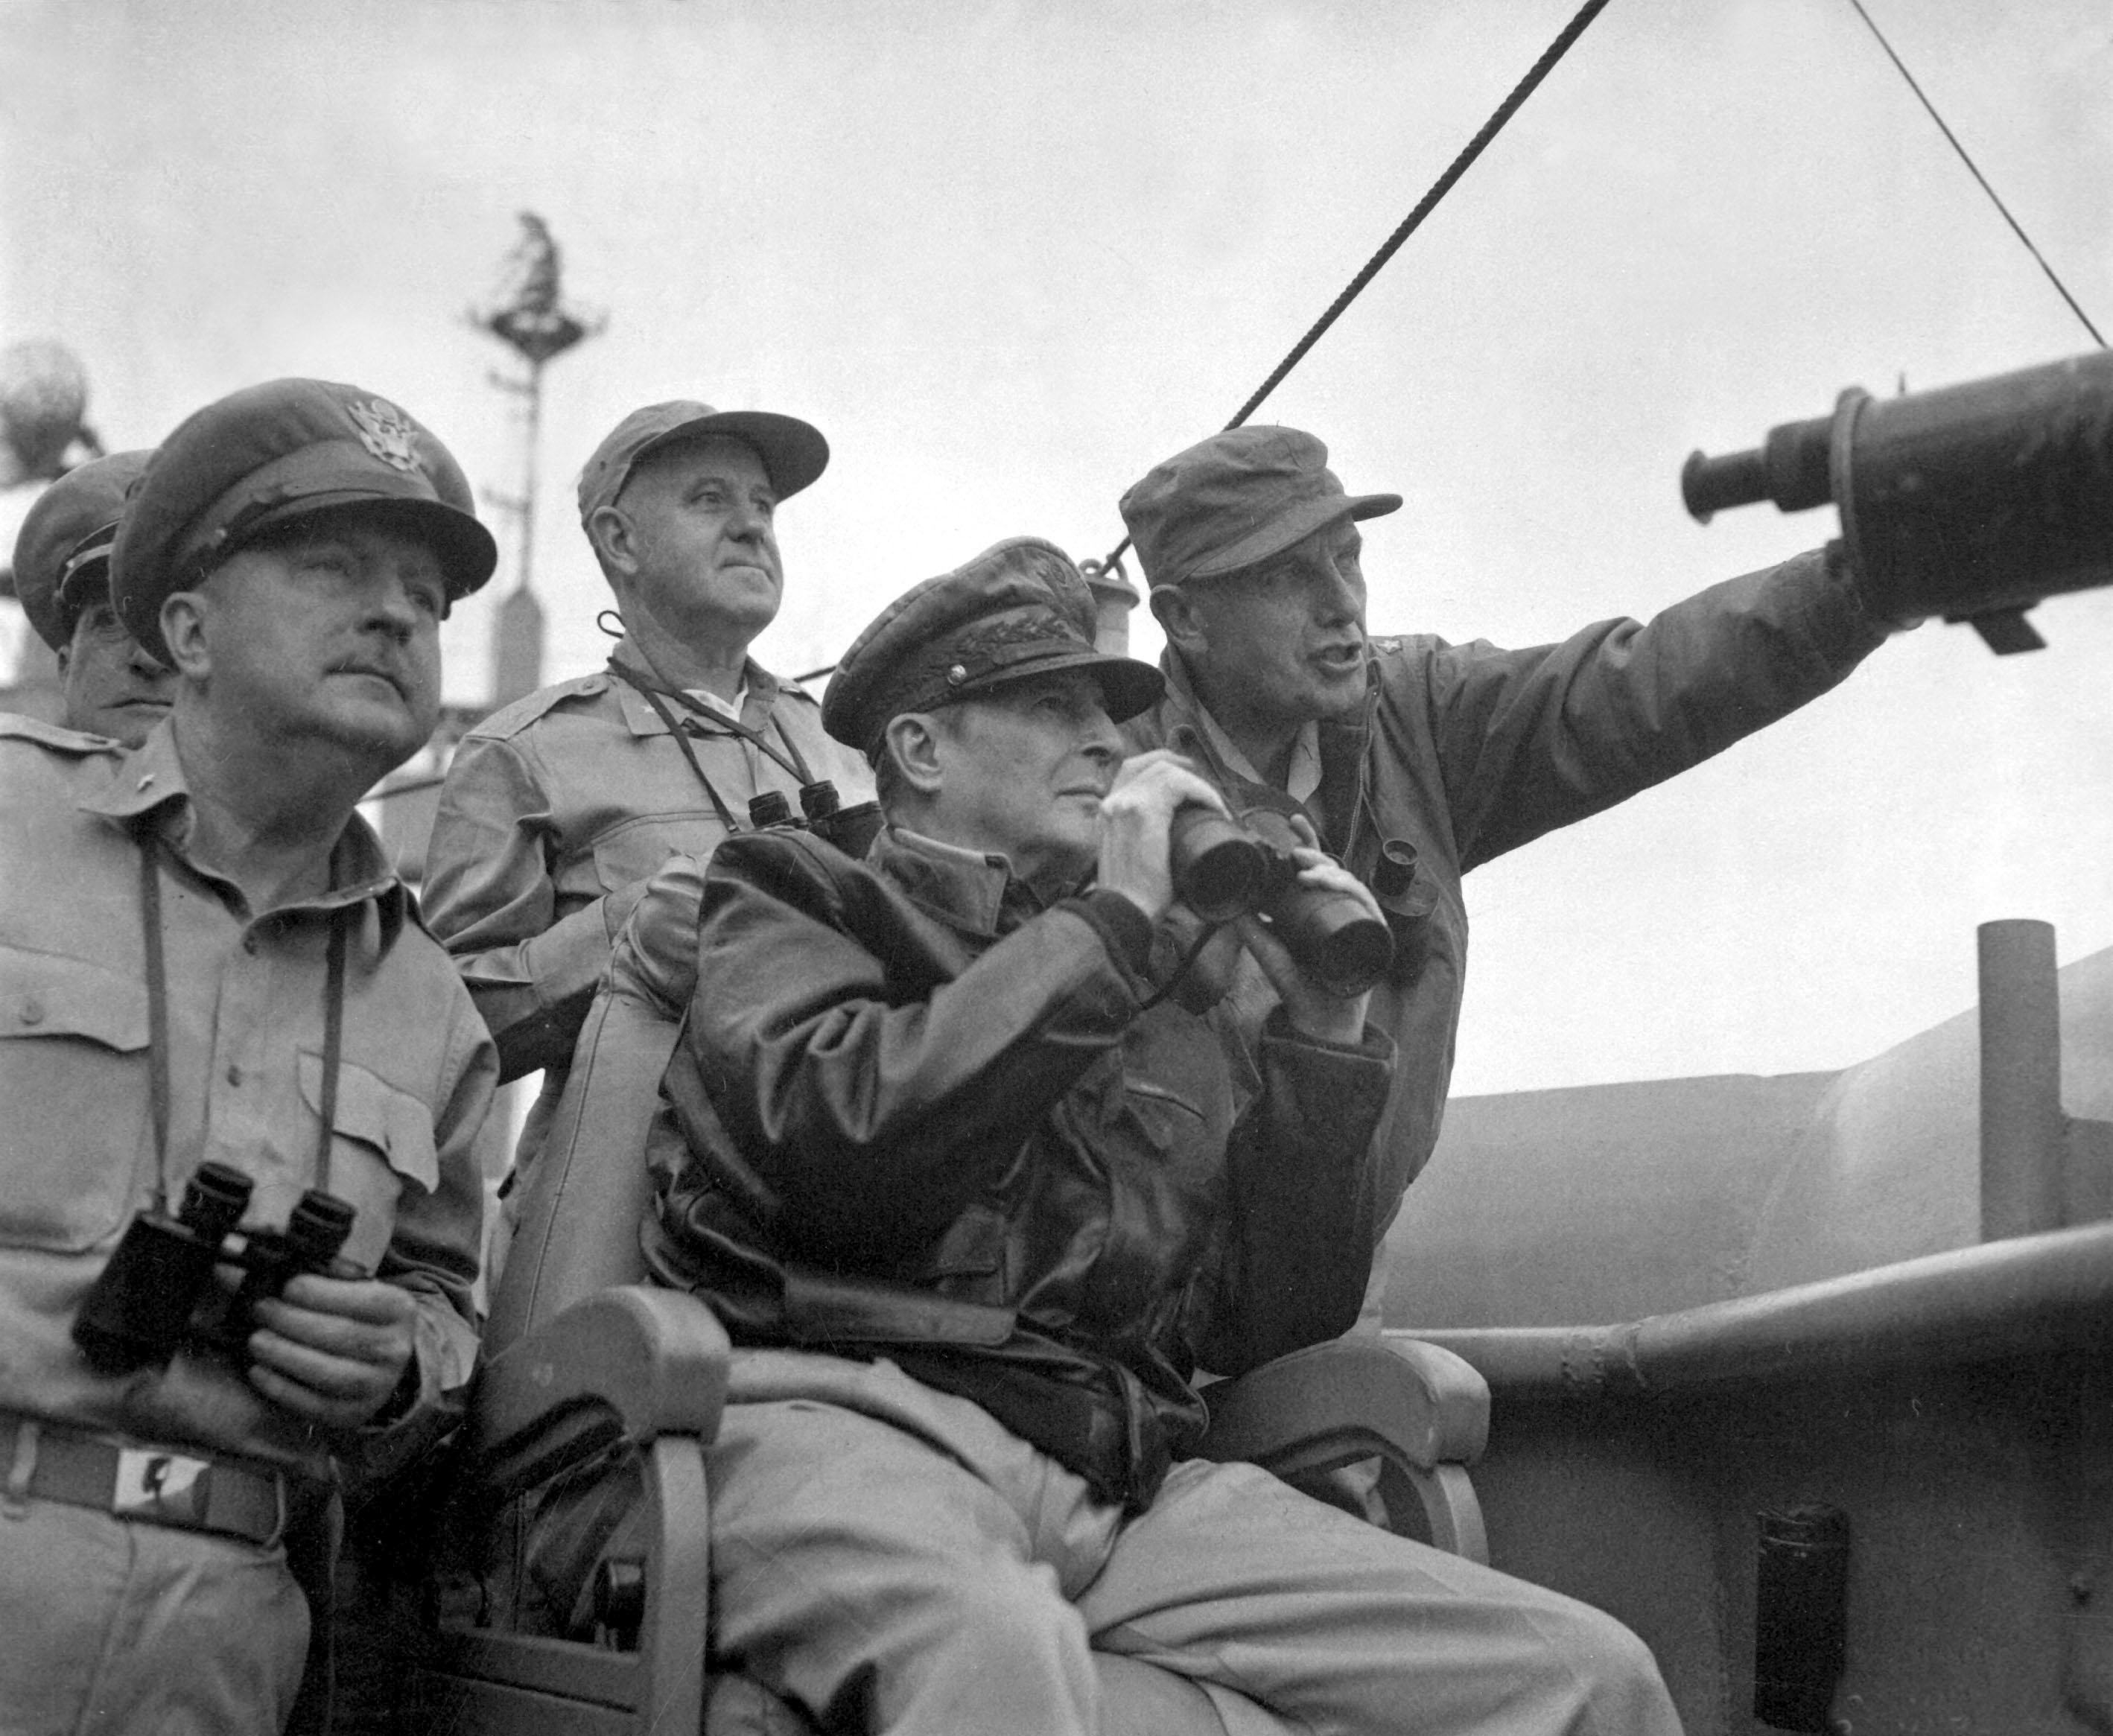 General Douglas MacArthur, UN Command CiC (seated), observes the naval shelling of Incheon from the USS Mt. McKinley, September 15, 1950.